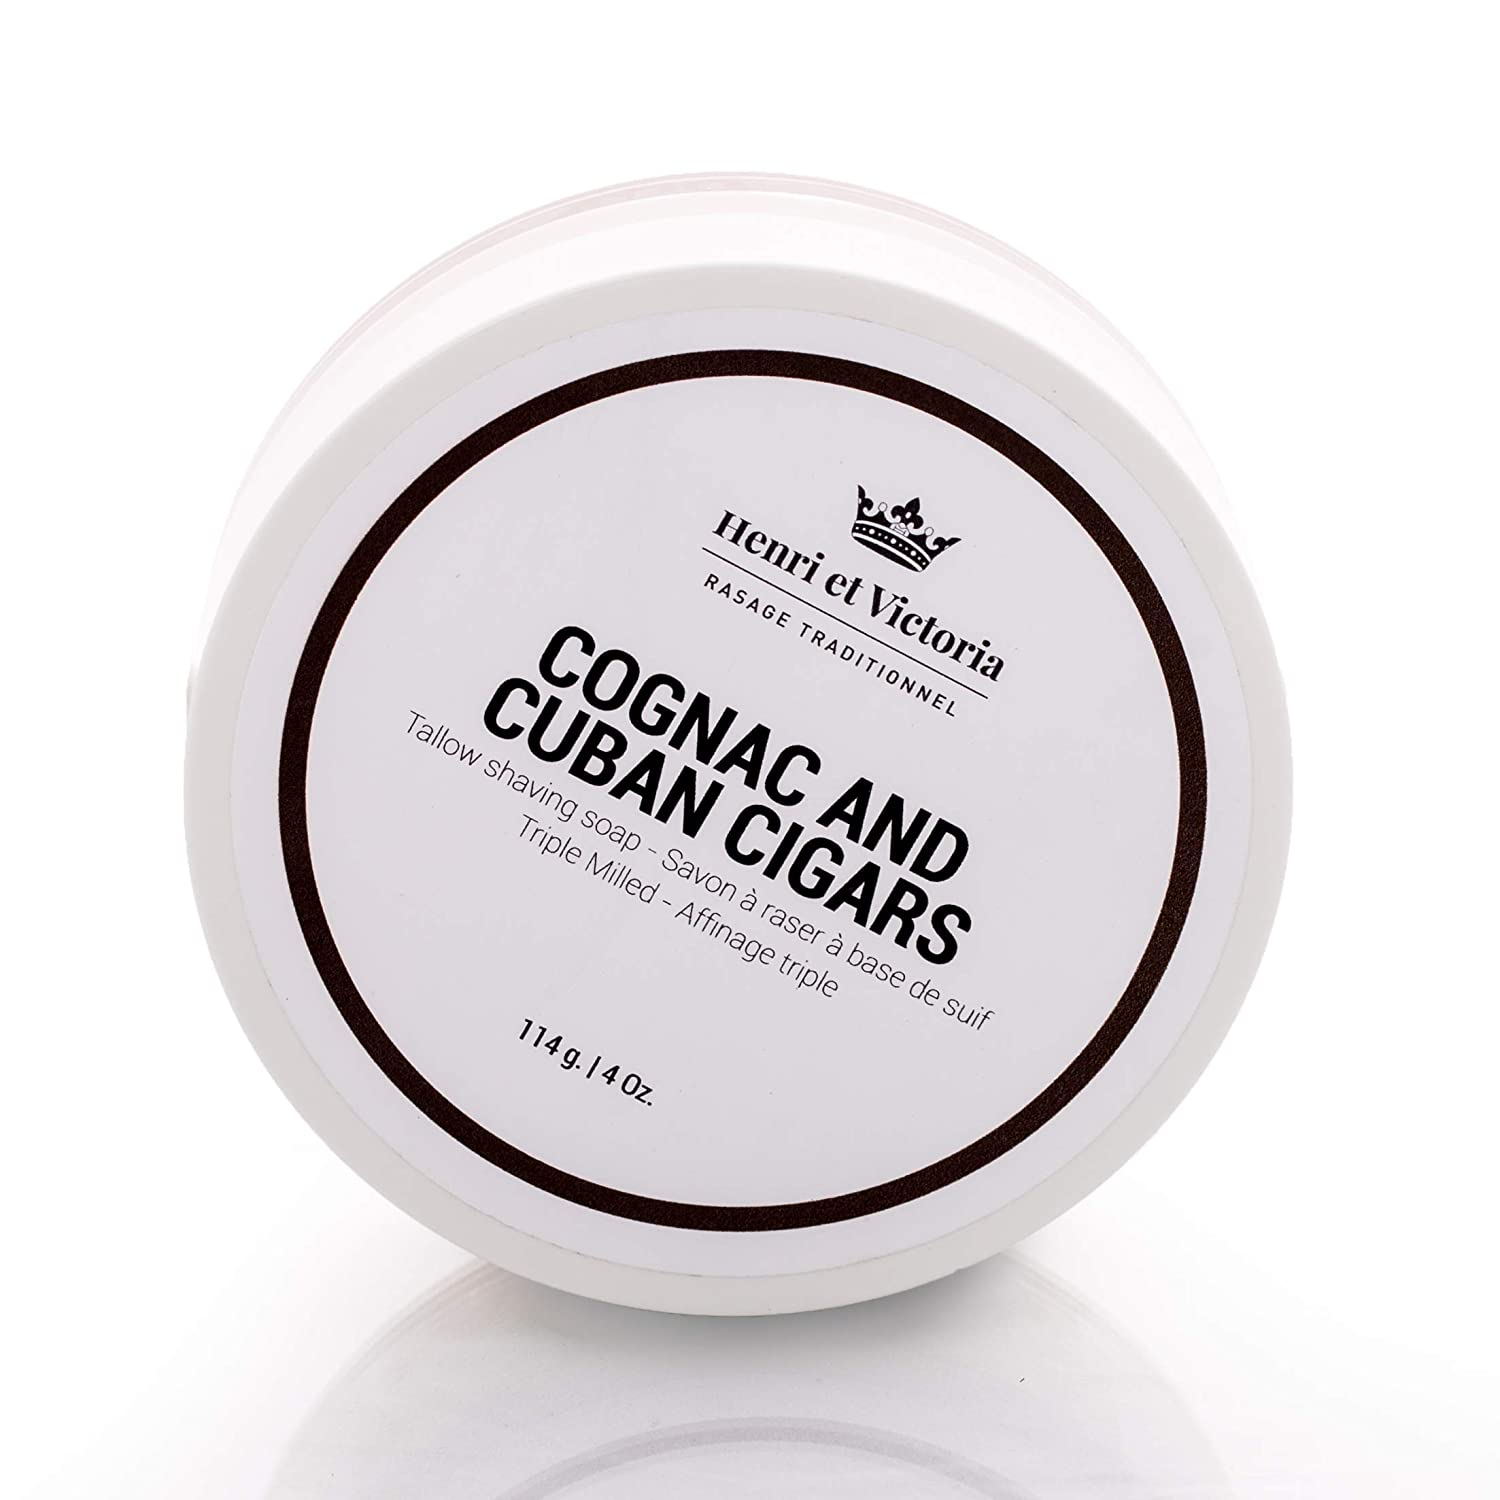 Cognac and Cuban Cigars Shaving Soap | Hand Made in CANADA | Henri et Victoria Triple Milled Shaving Soap For Men |Moisturizing, Ultra Glide, Cushioning, Easy Lather, Prevent Razor Burn and Dry Skin | 114 g (4 oz) Henri et Victoria Inc.